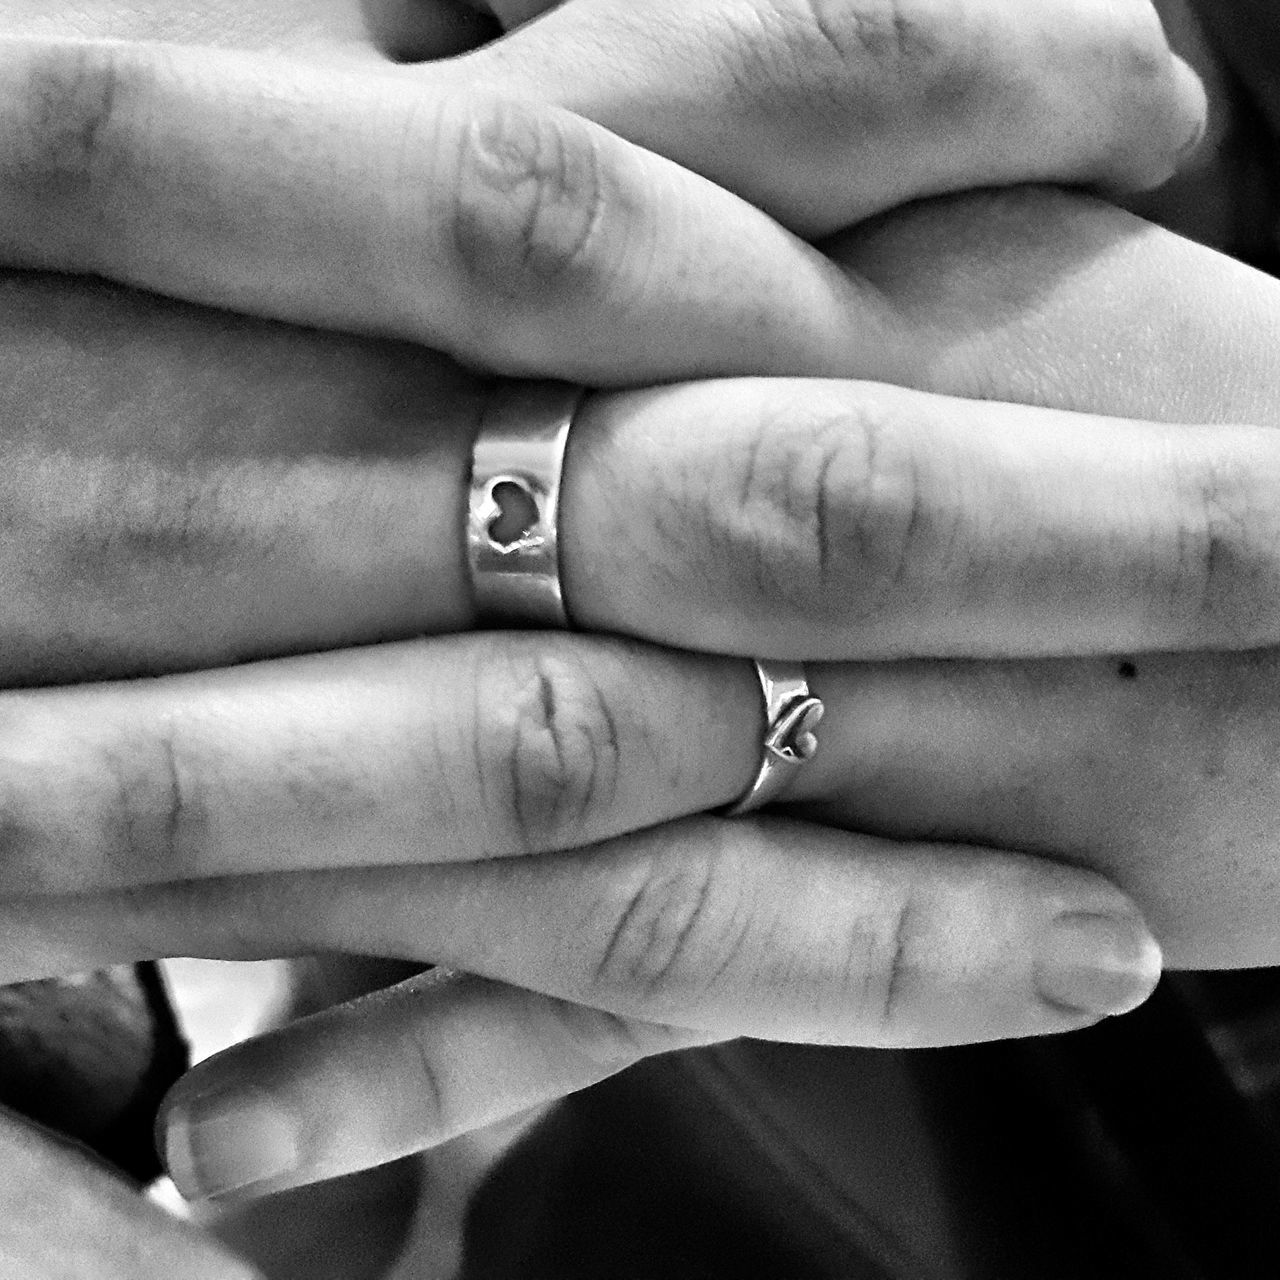 Human Hand Human Body Part Human Finger Ring Love Togetherness Two People Close-up Women Bonding Life Events Archival Jewelry Adult Men Wedding Ring People Adults Only Wedding Ceremony Indoors